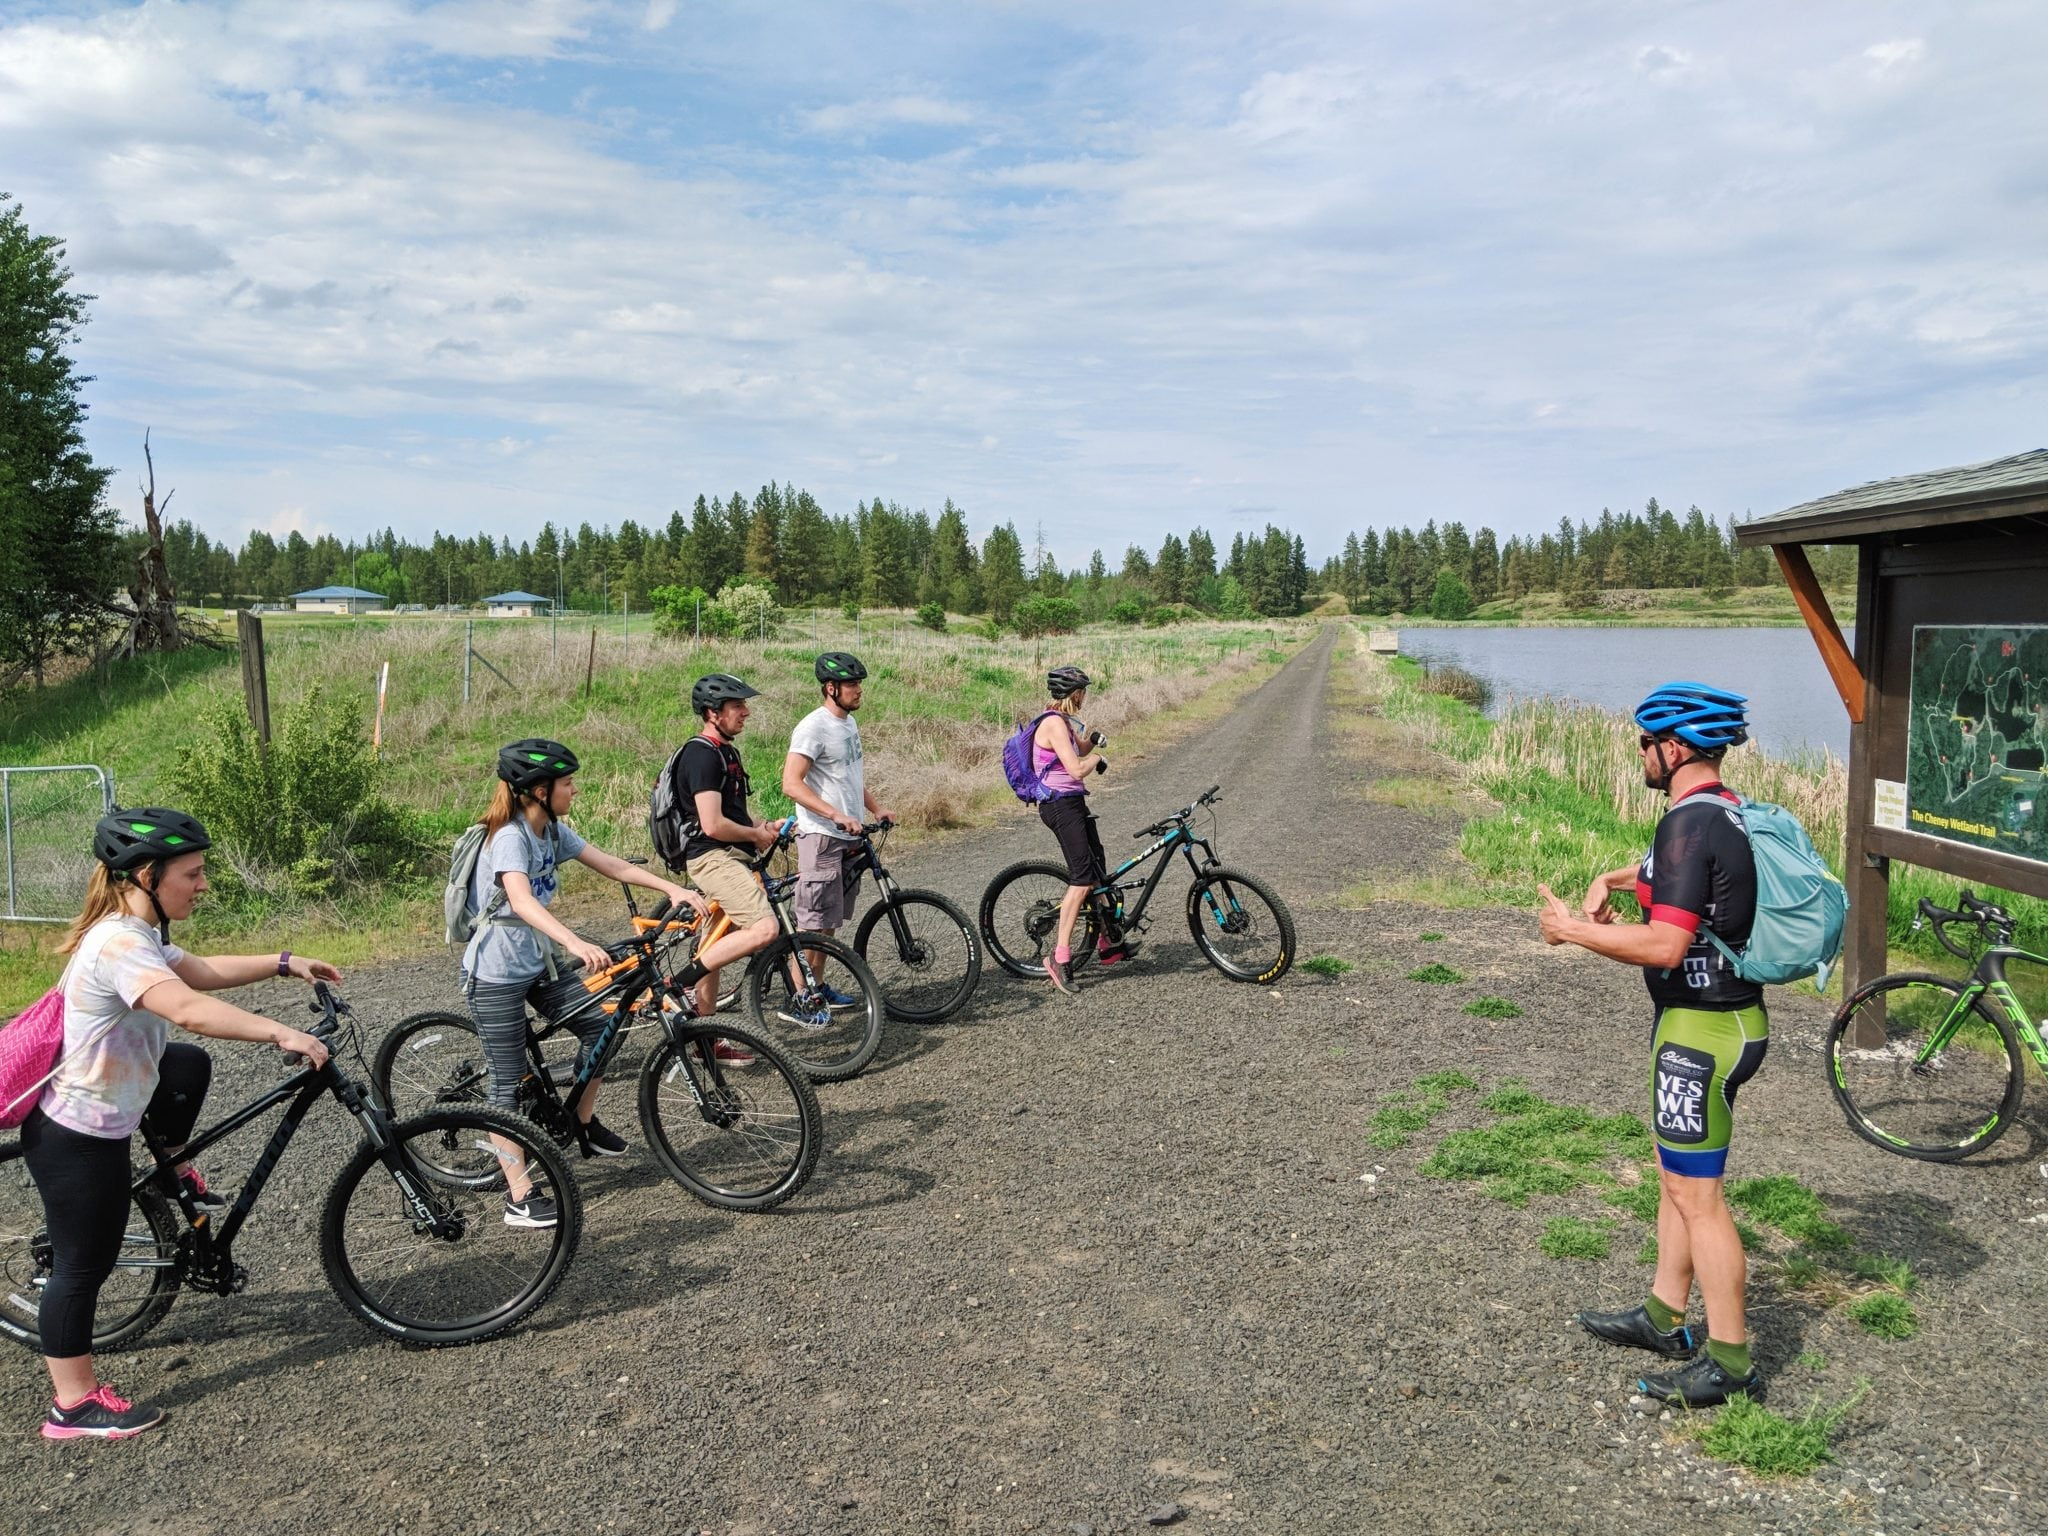 Five people standing over bikes by the Cheney wetlands listening to someone.